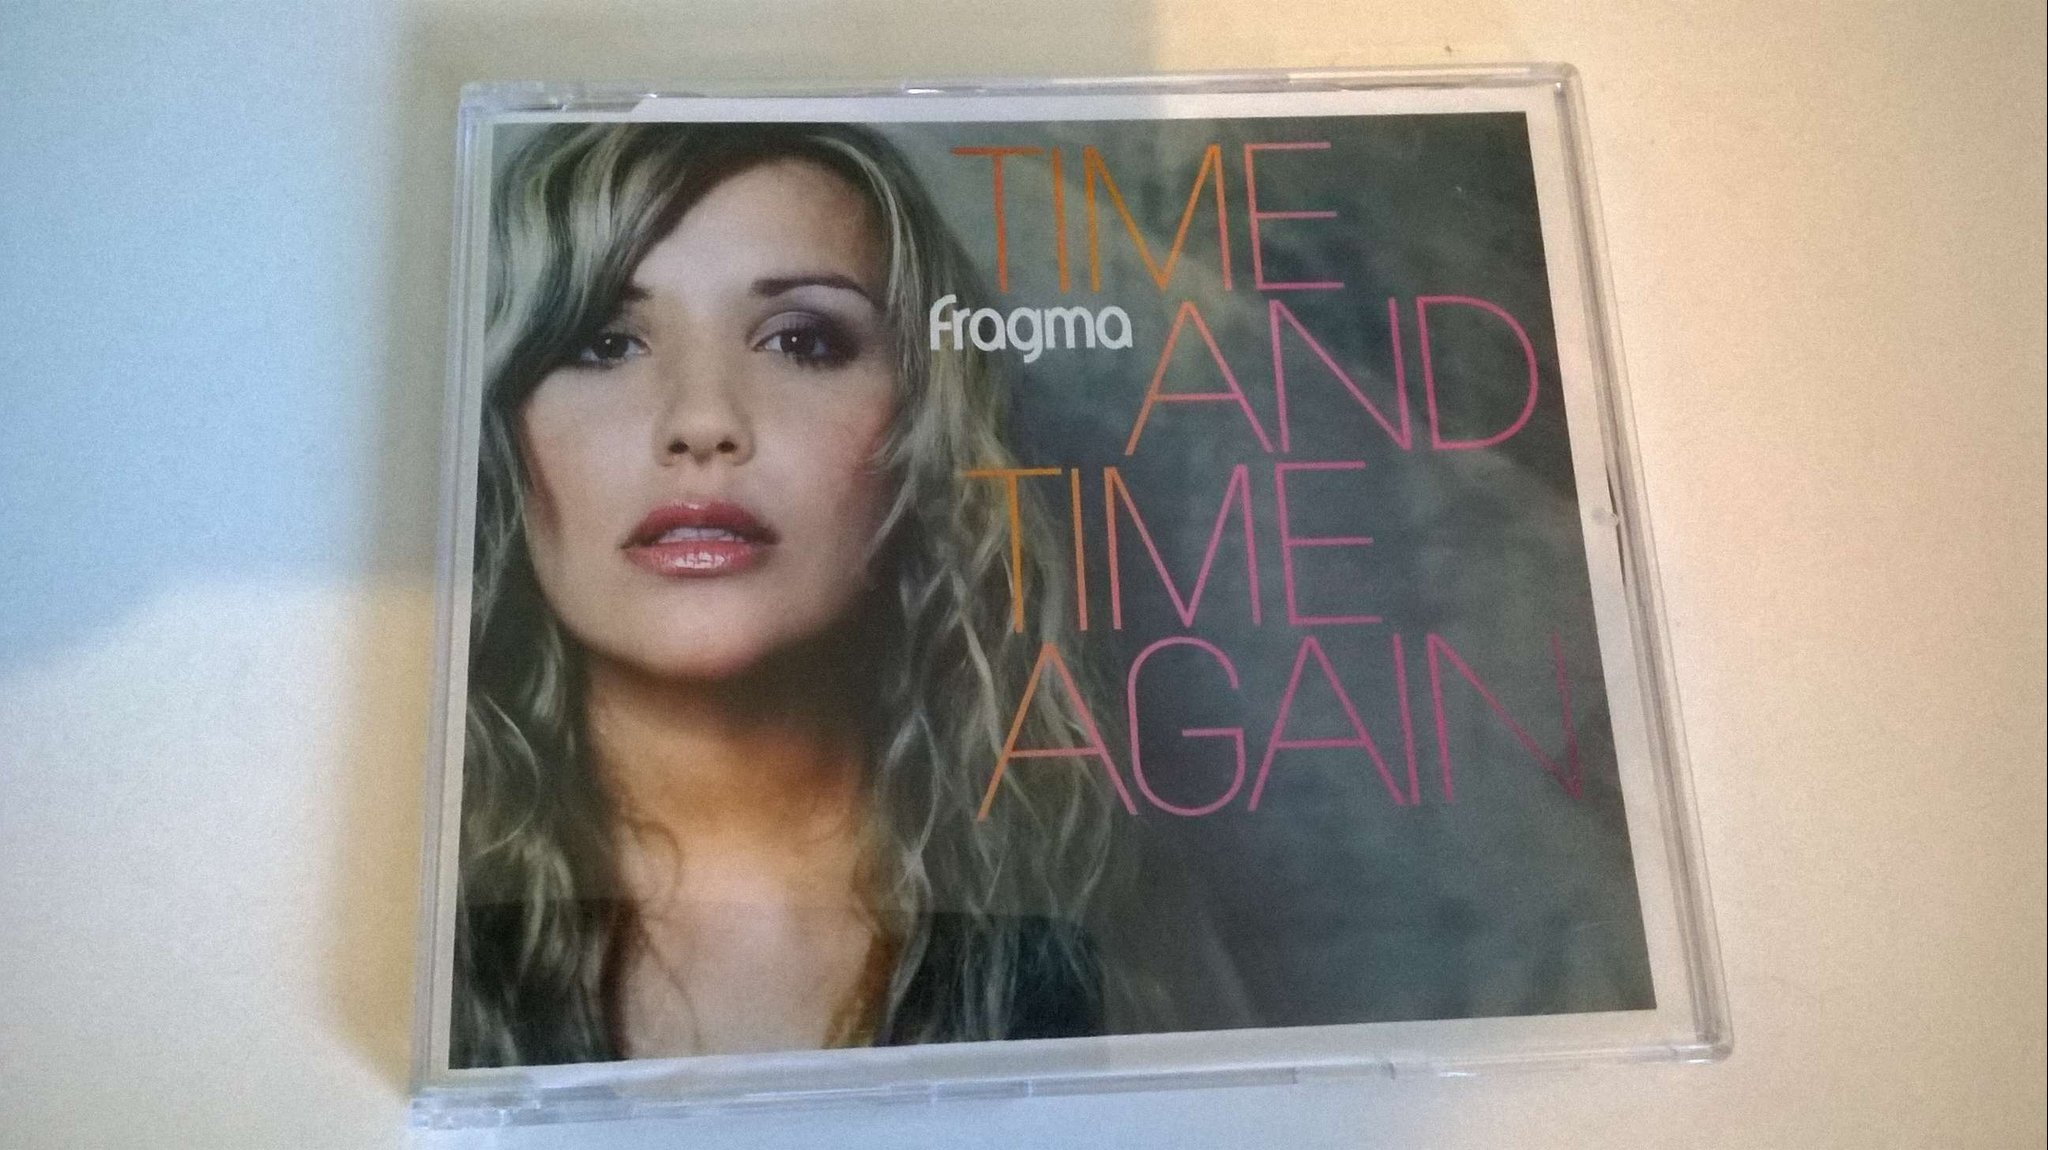 Fragma - Time And Time Again, CD